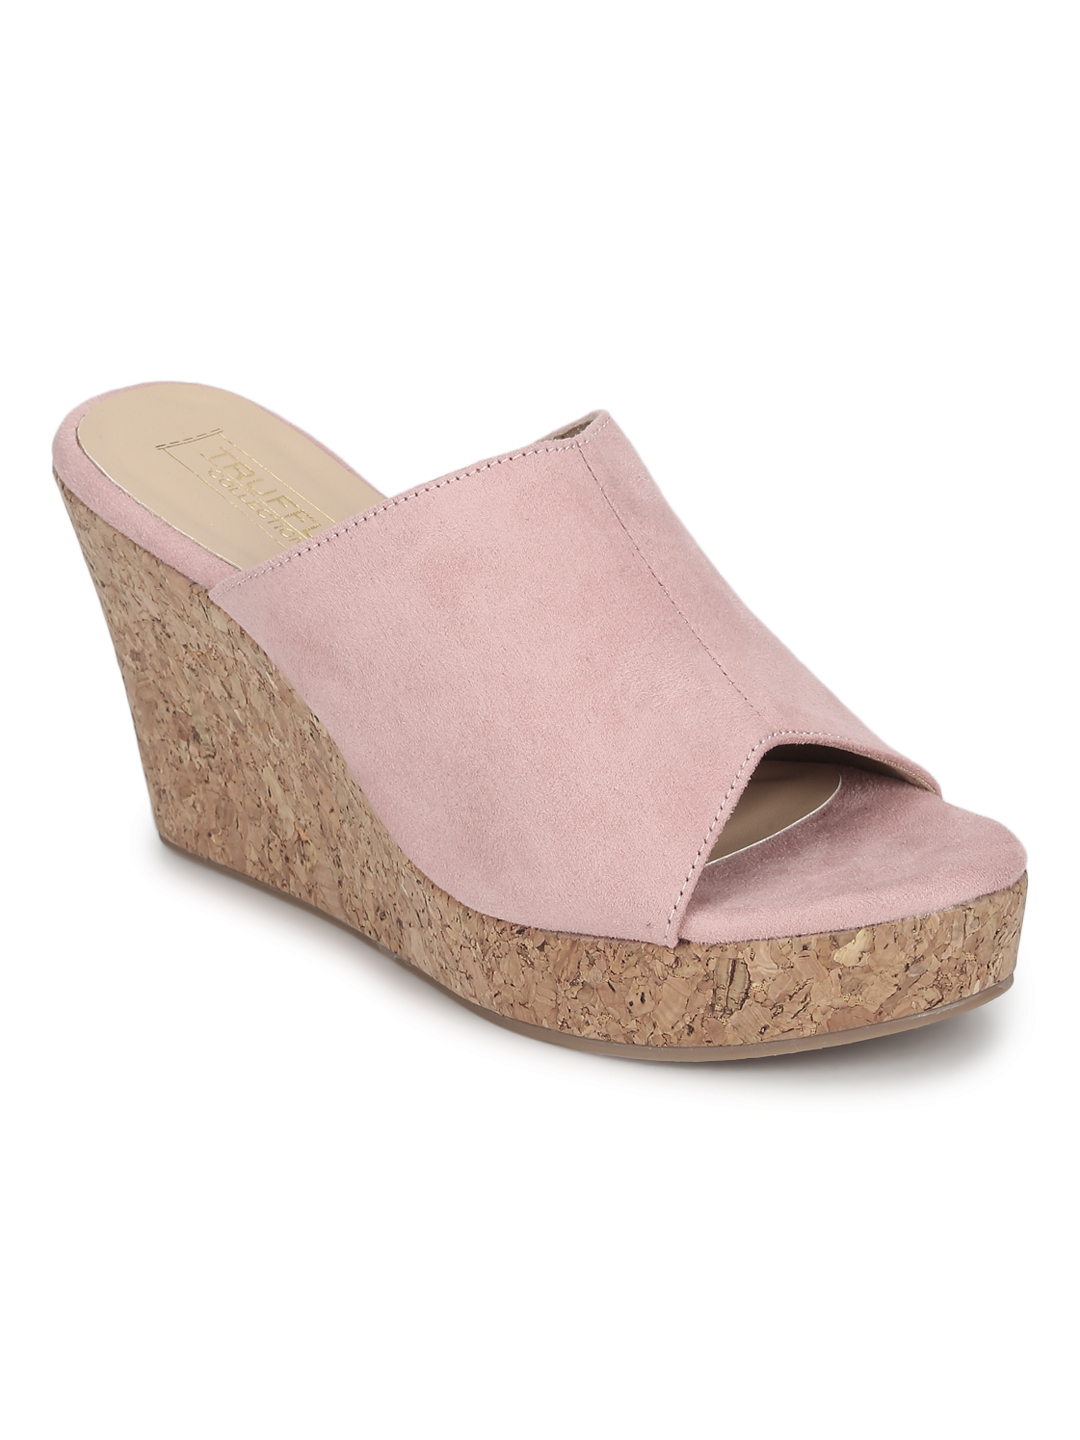 Truffle Collection | Pink Micro Peep Toe Slip On Wedges